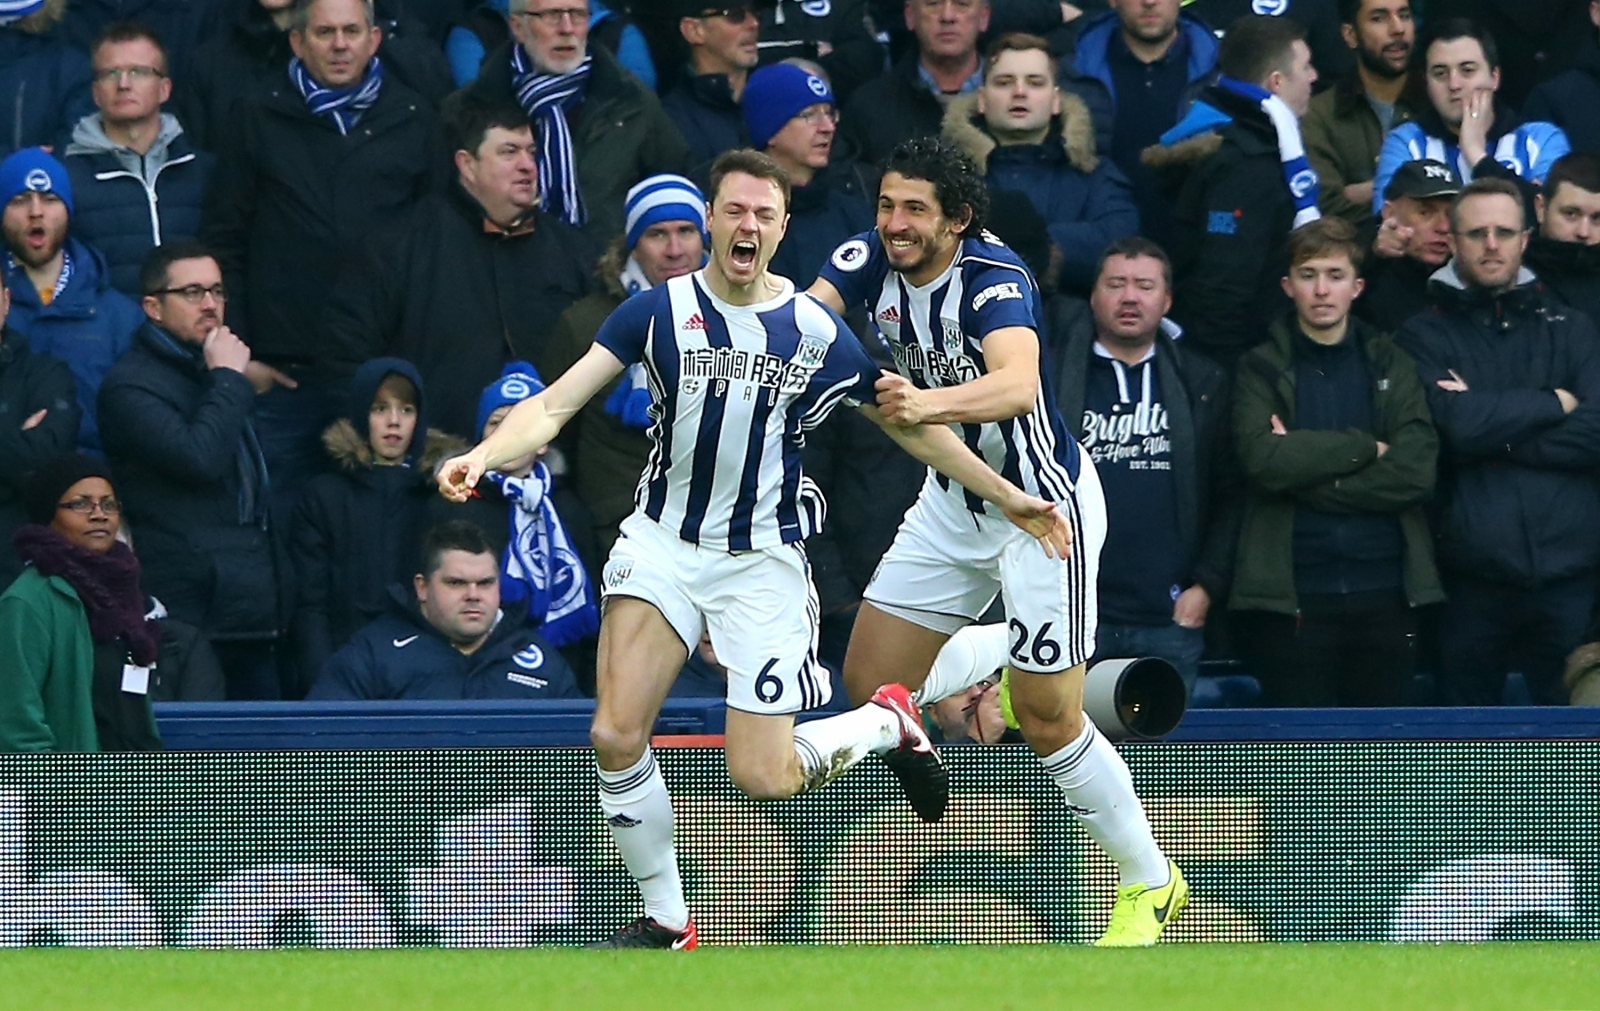 Jonny Evans and Ahmed Hegazi